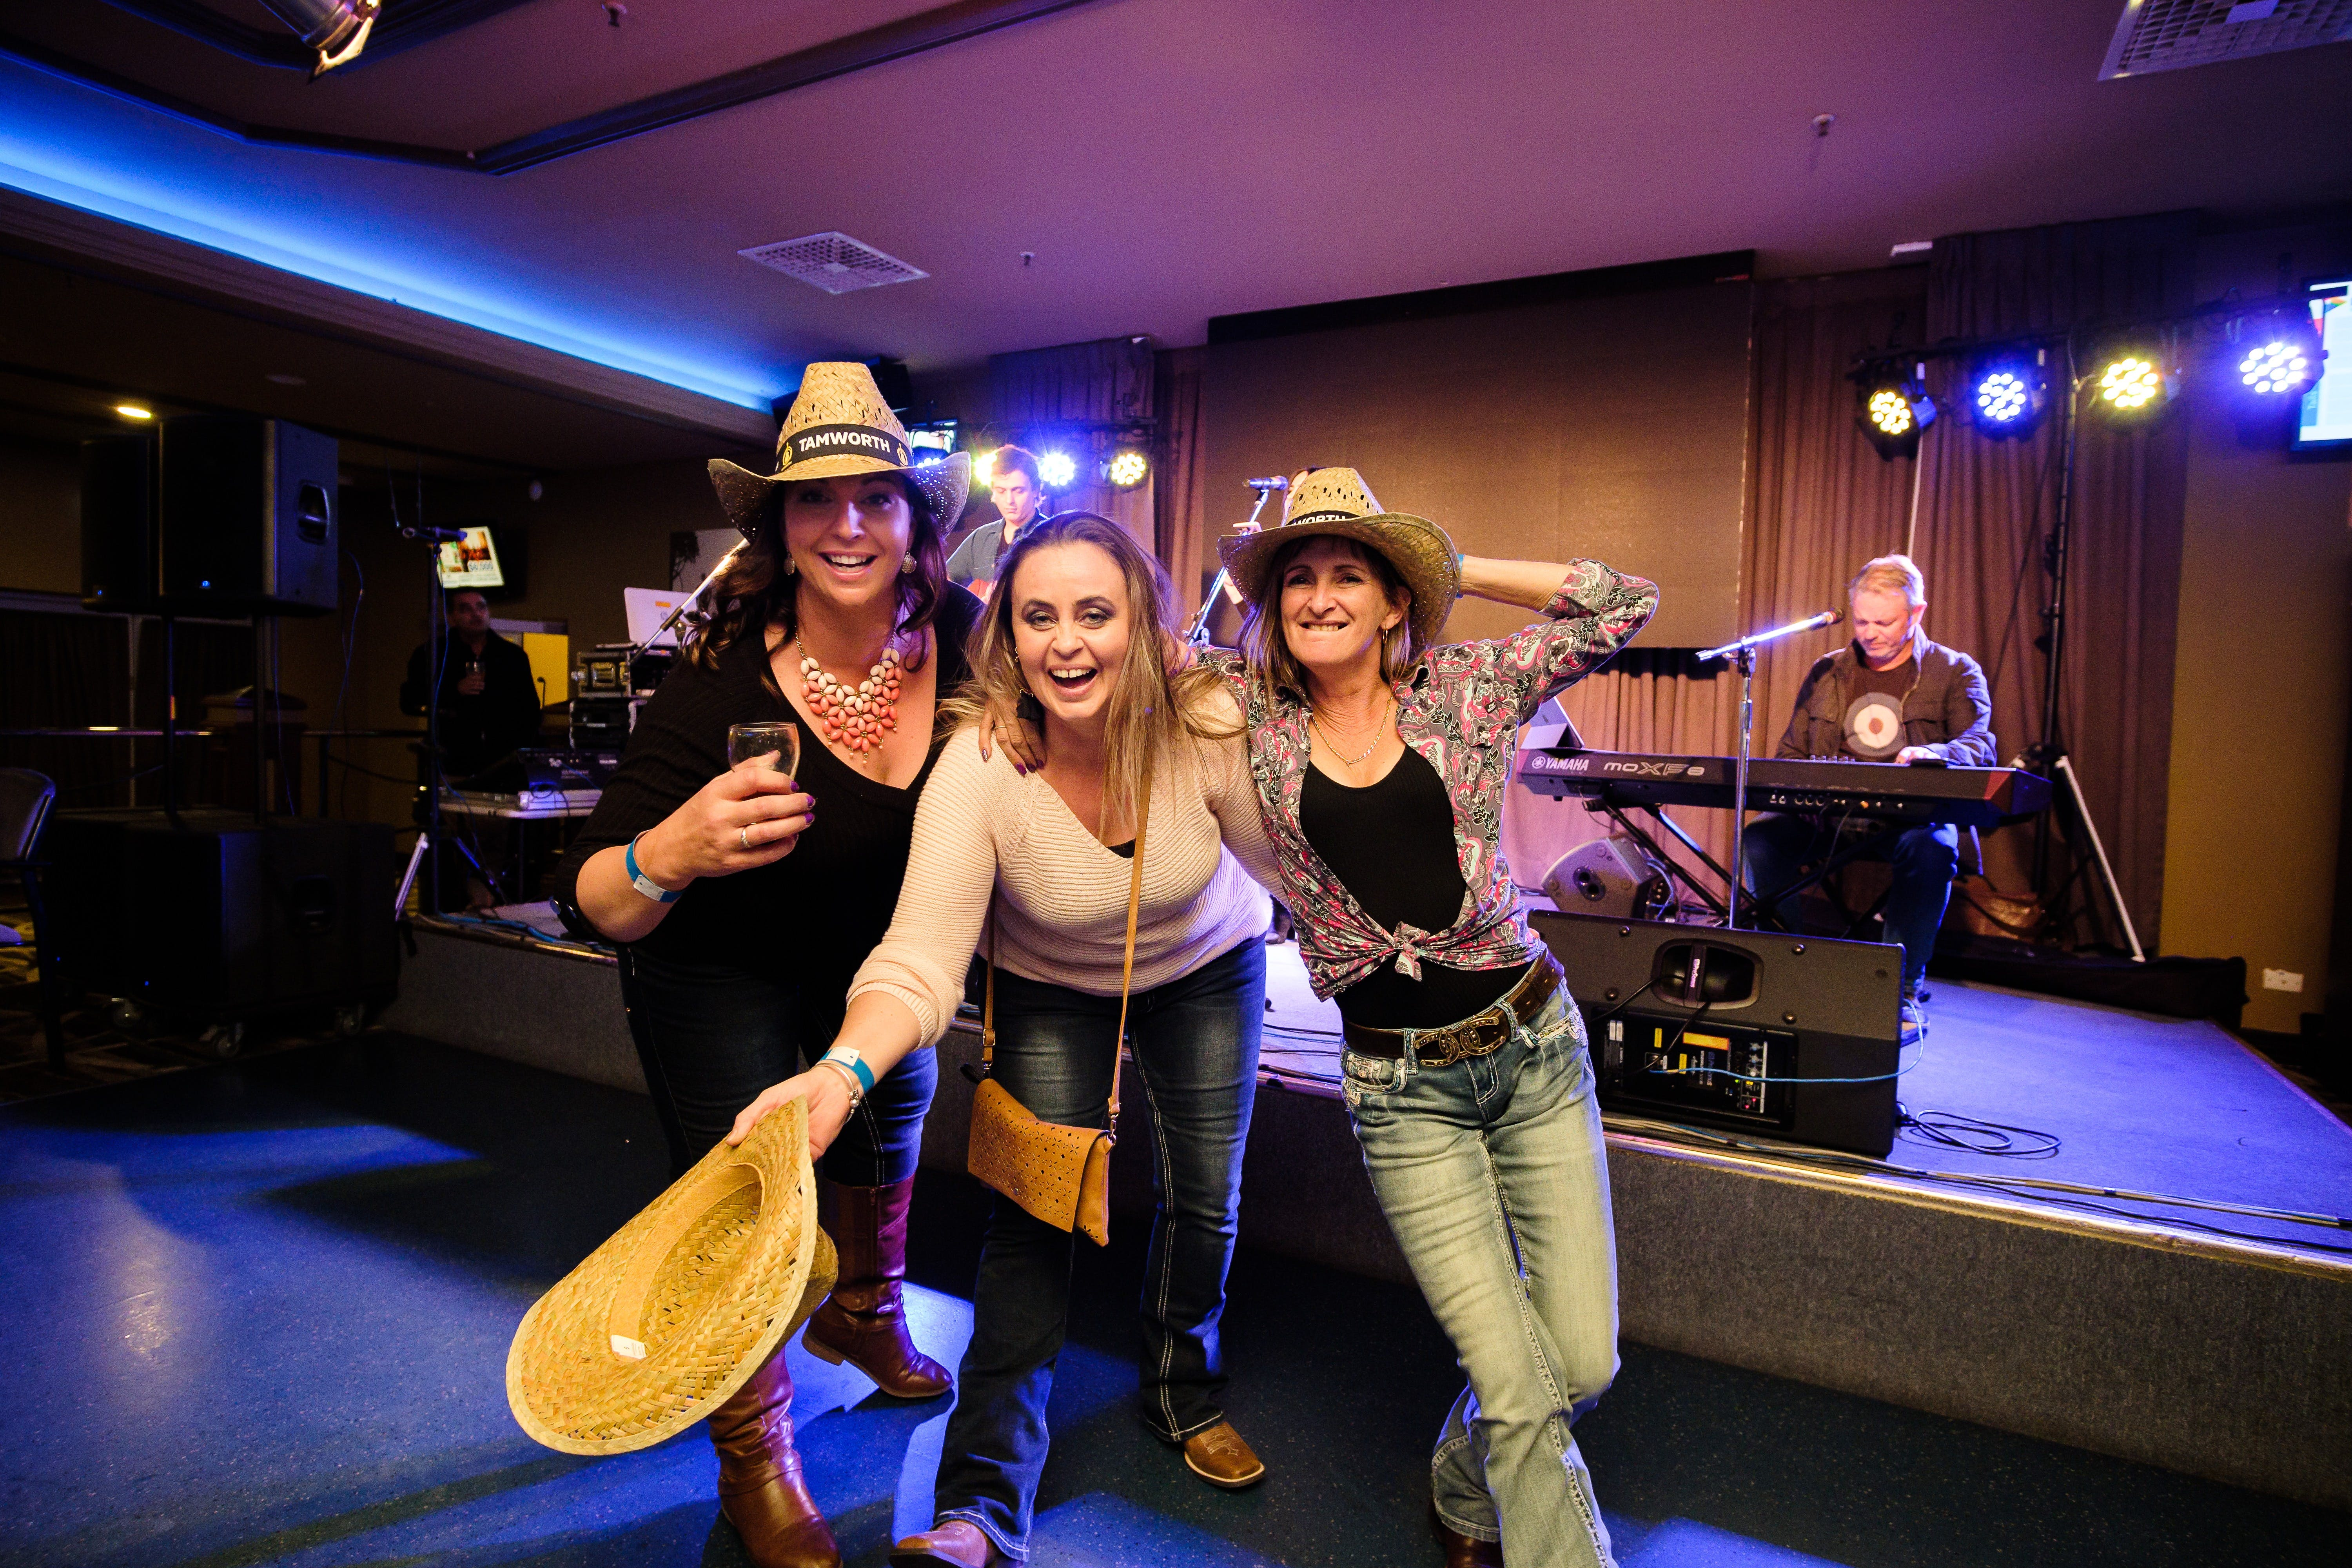 Hats Off to Country Music Festival - Lightning Ridge Tourism